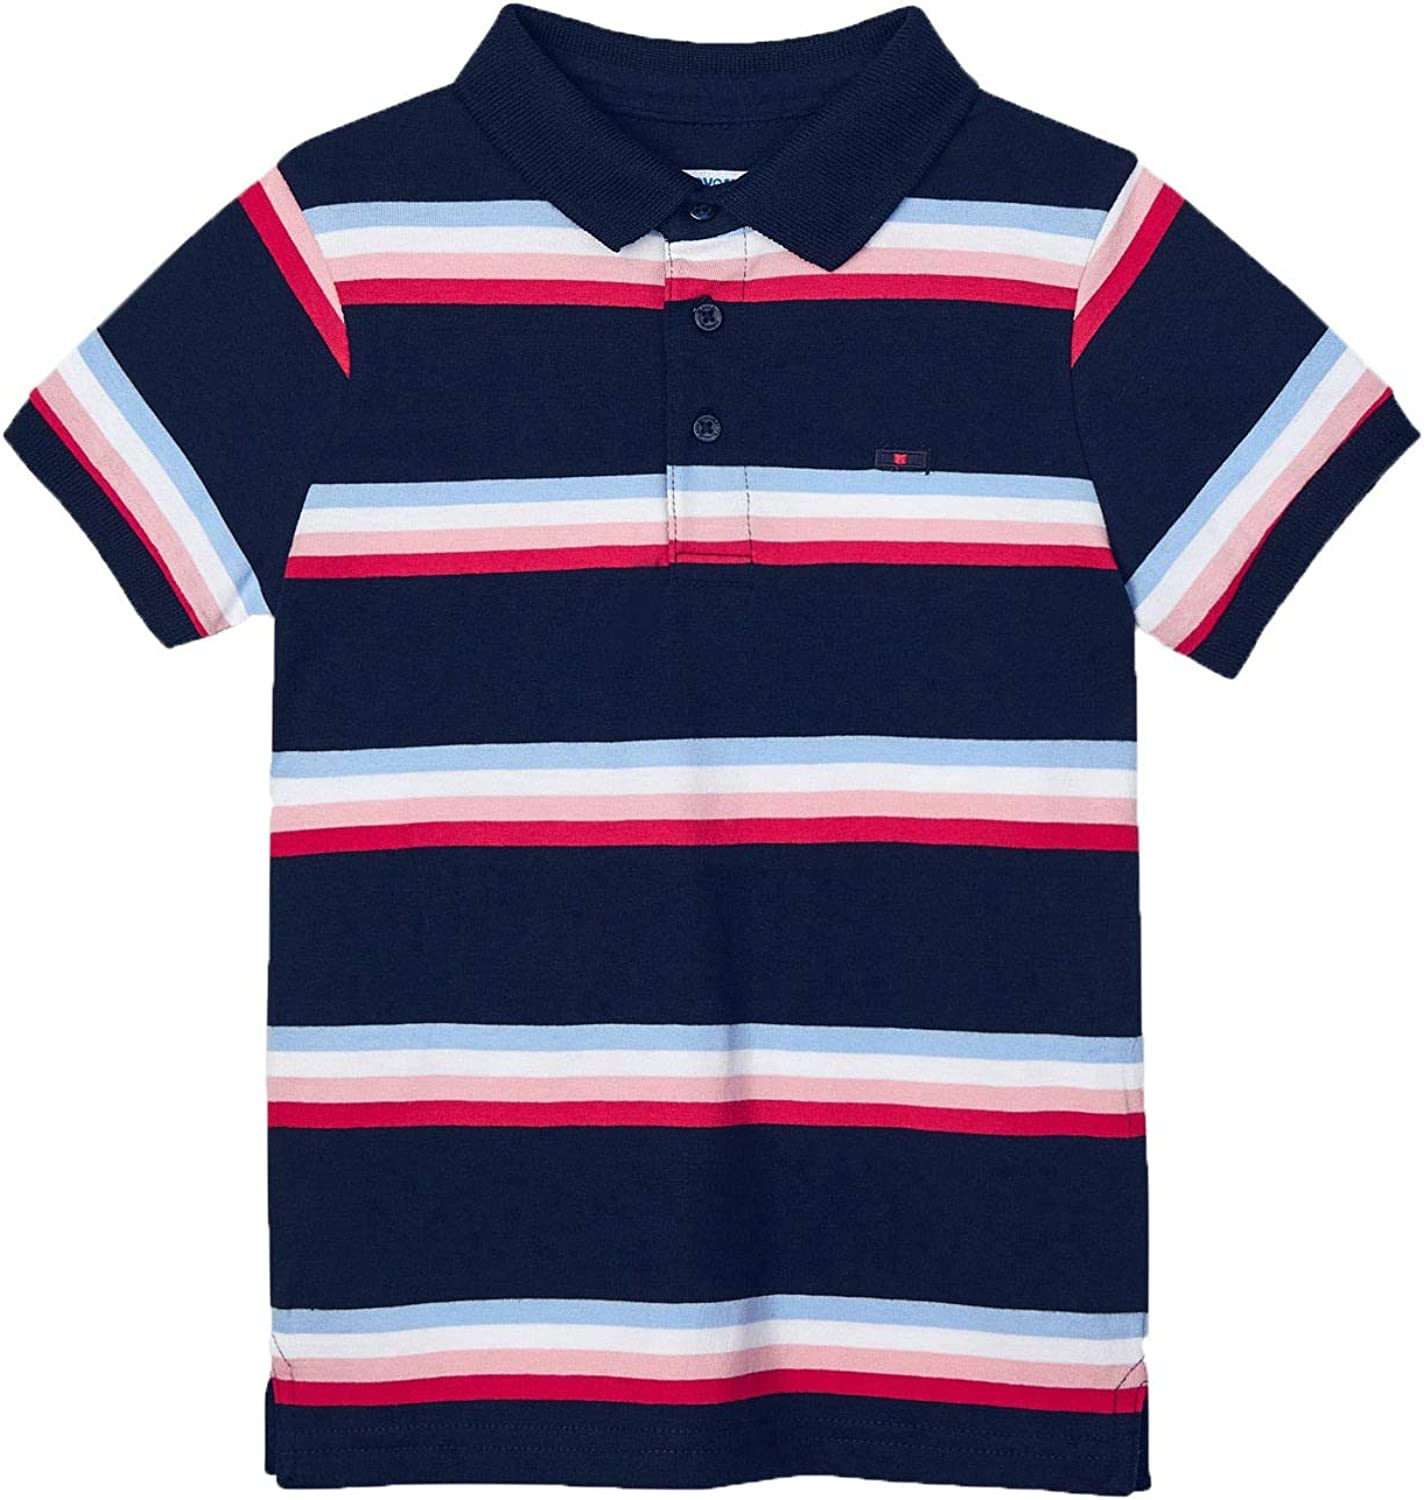 Mayoral - Stripes s/s Polo for Boys - 3111, Navy